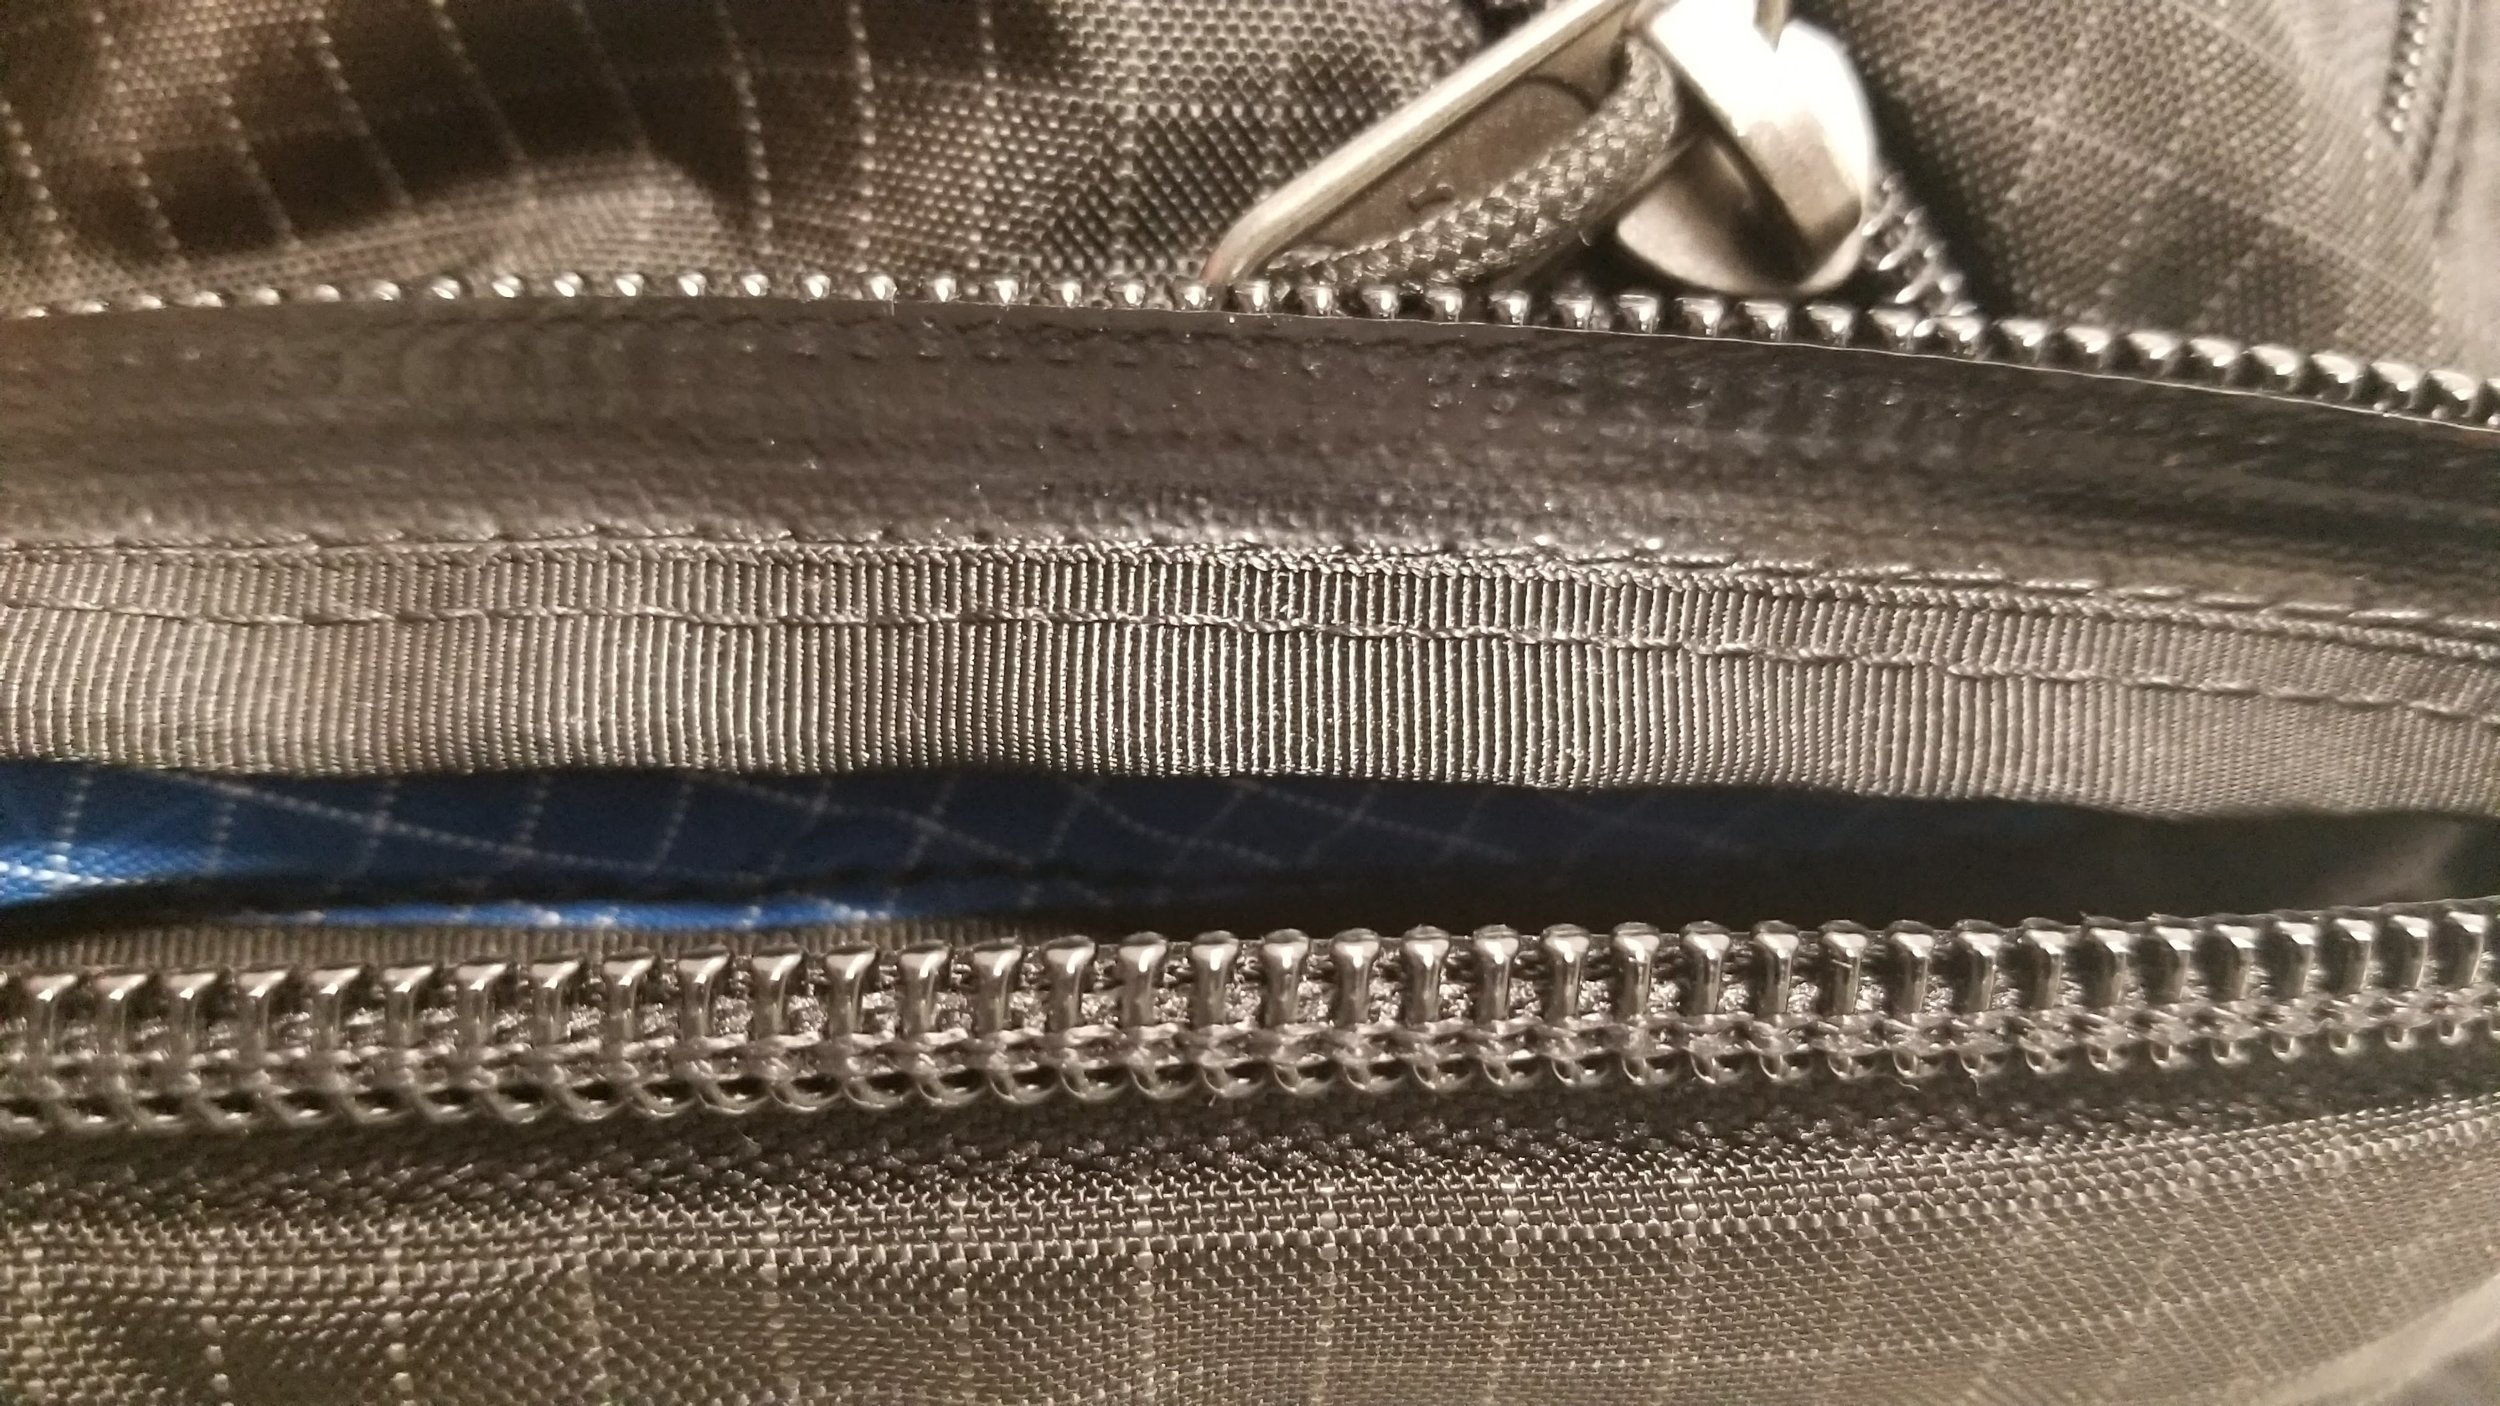 Color matched rubbery coating on the inside of the zippers.